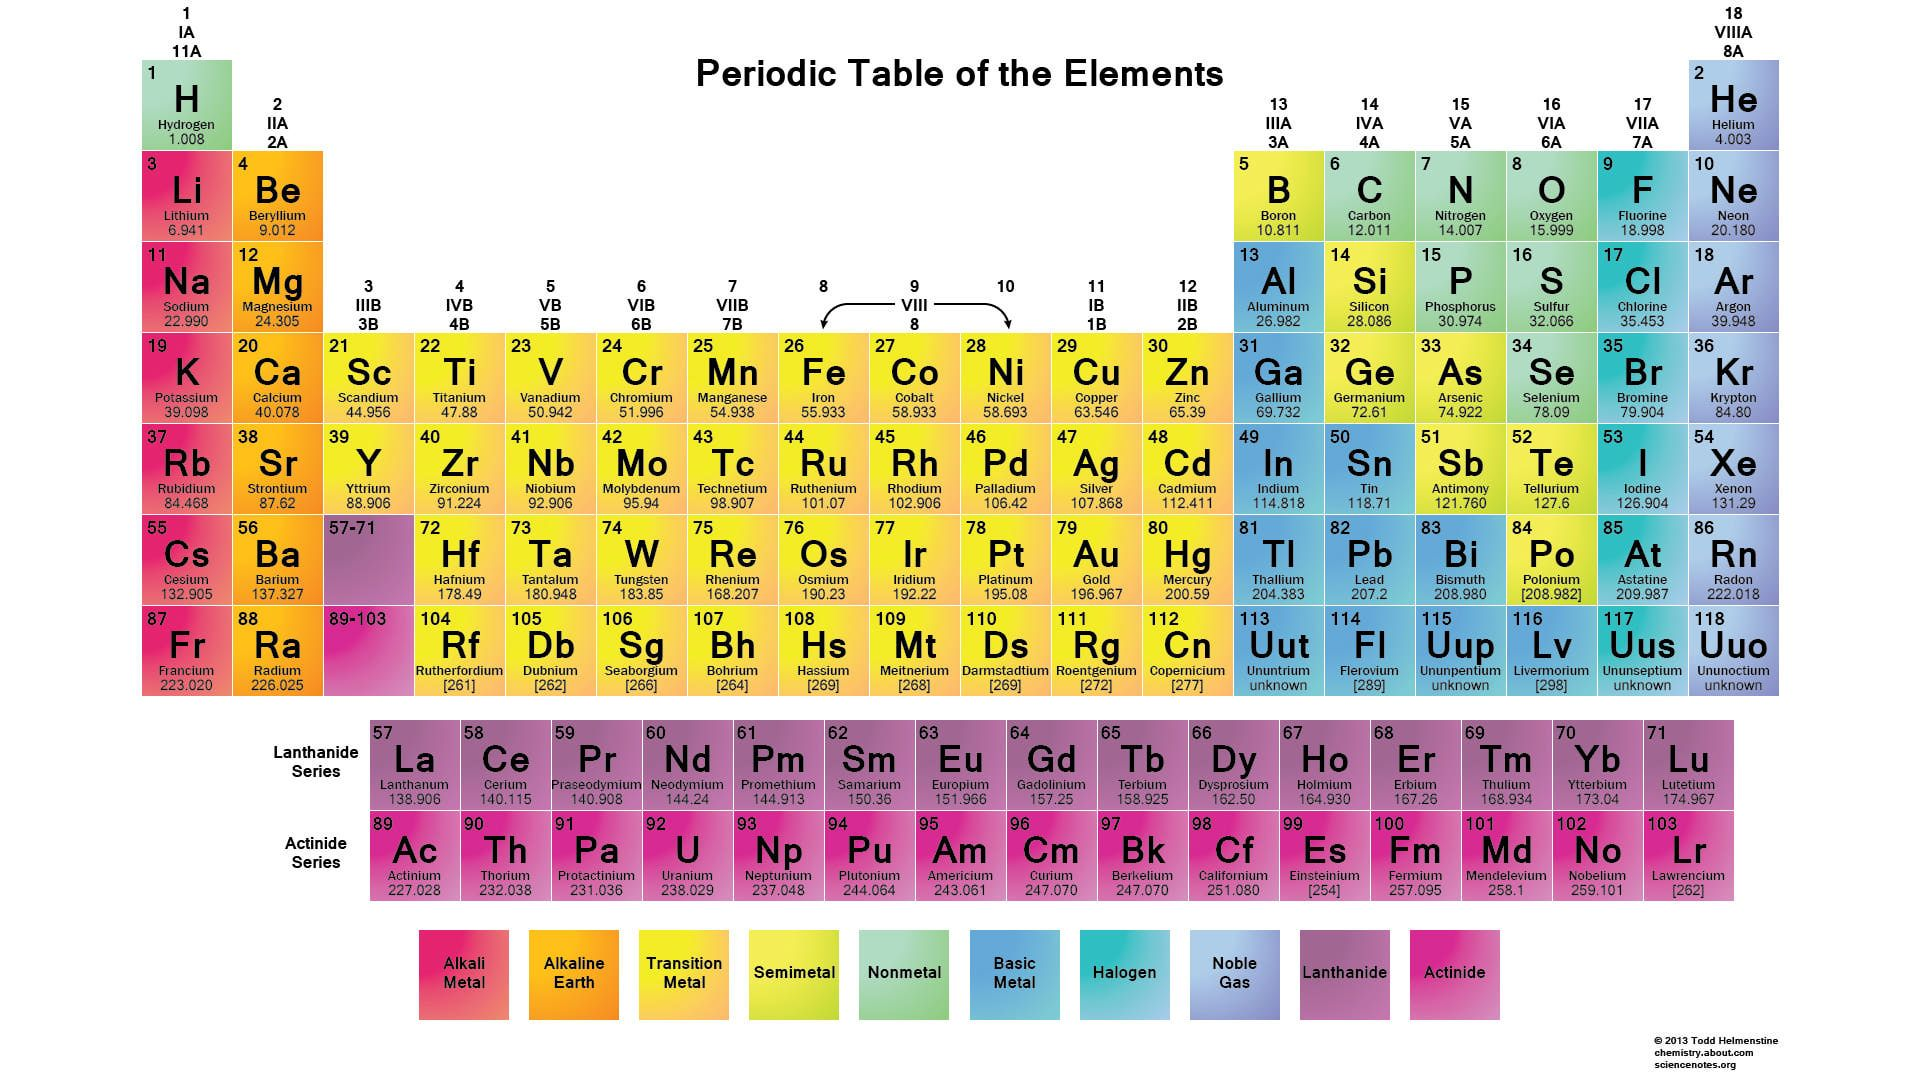 High resolution printable periodic tables science nature i like really nice color coded periodic tables high resolution images made with an aspect ratio that re sizes well black white transparent backgrounds for urtaz Image collections